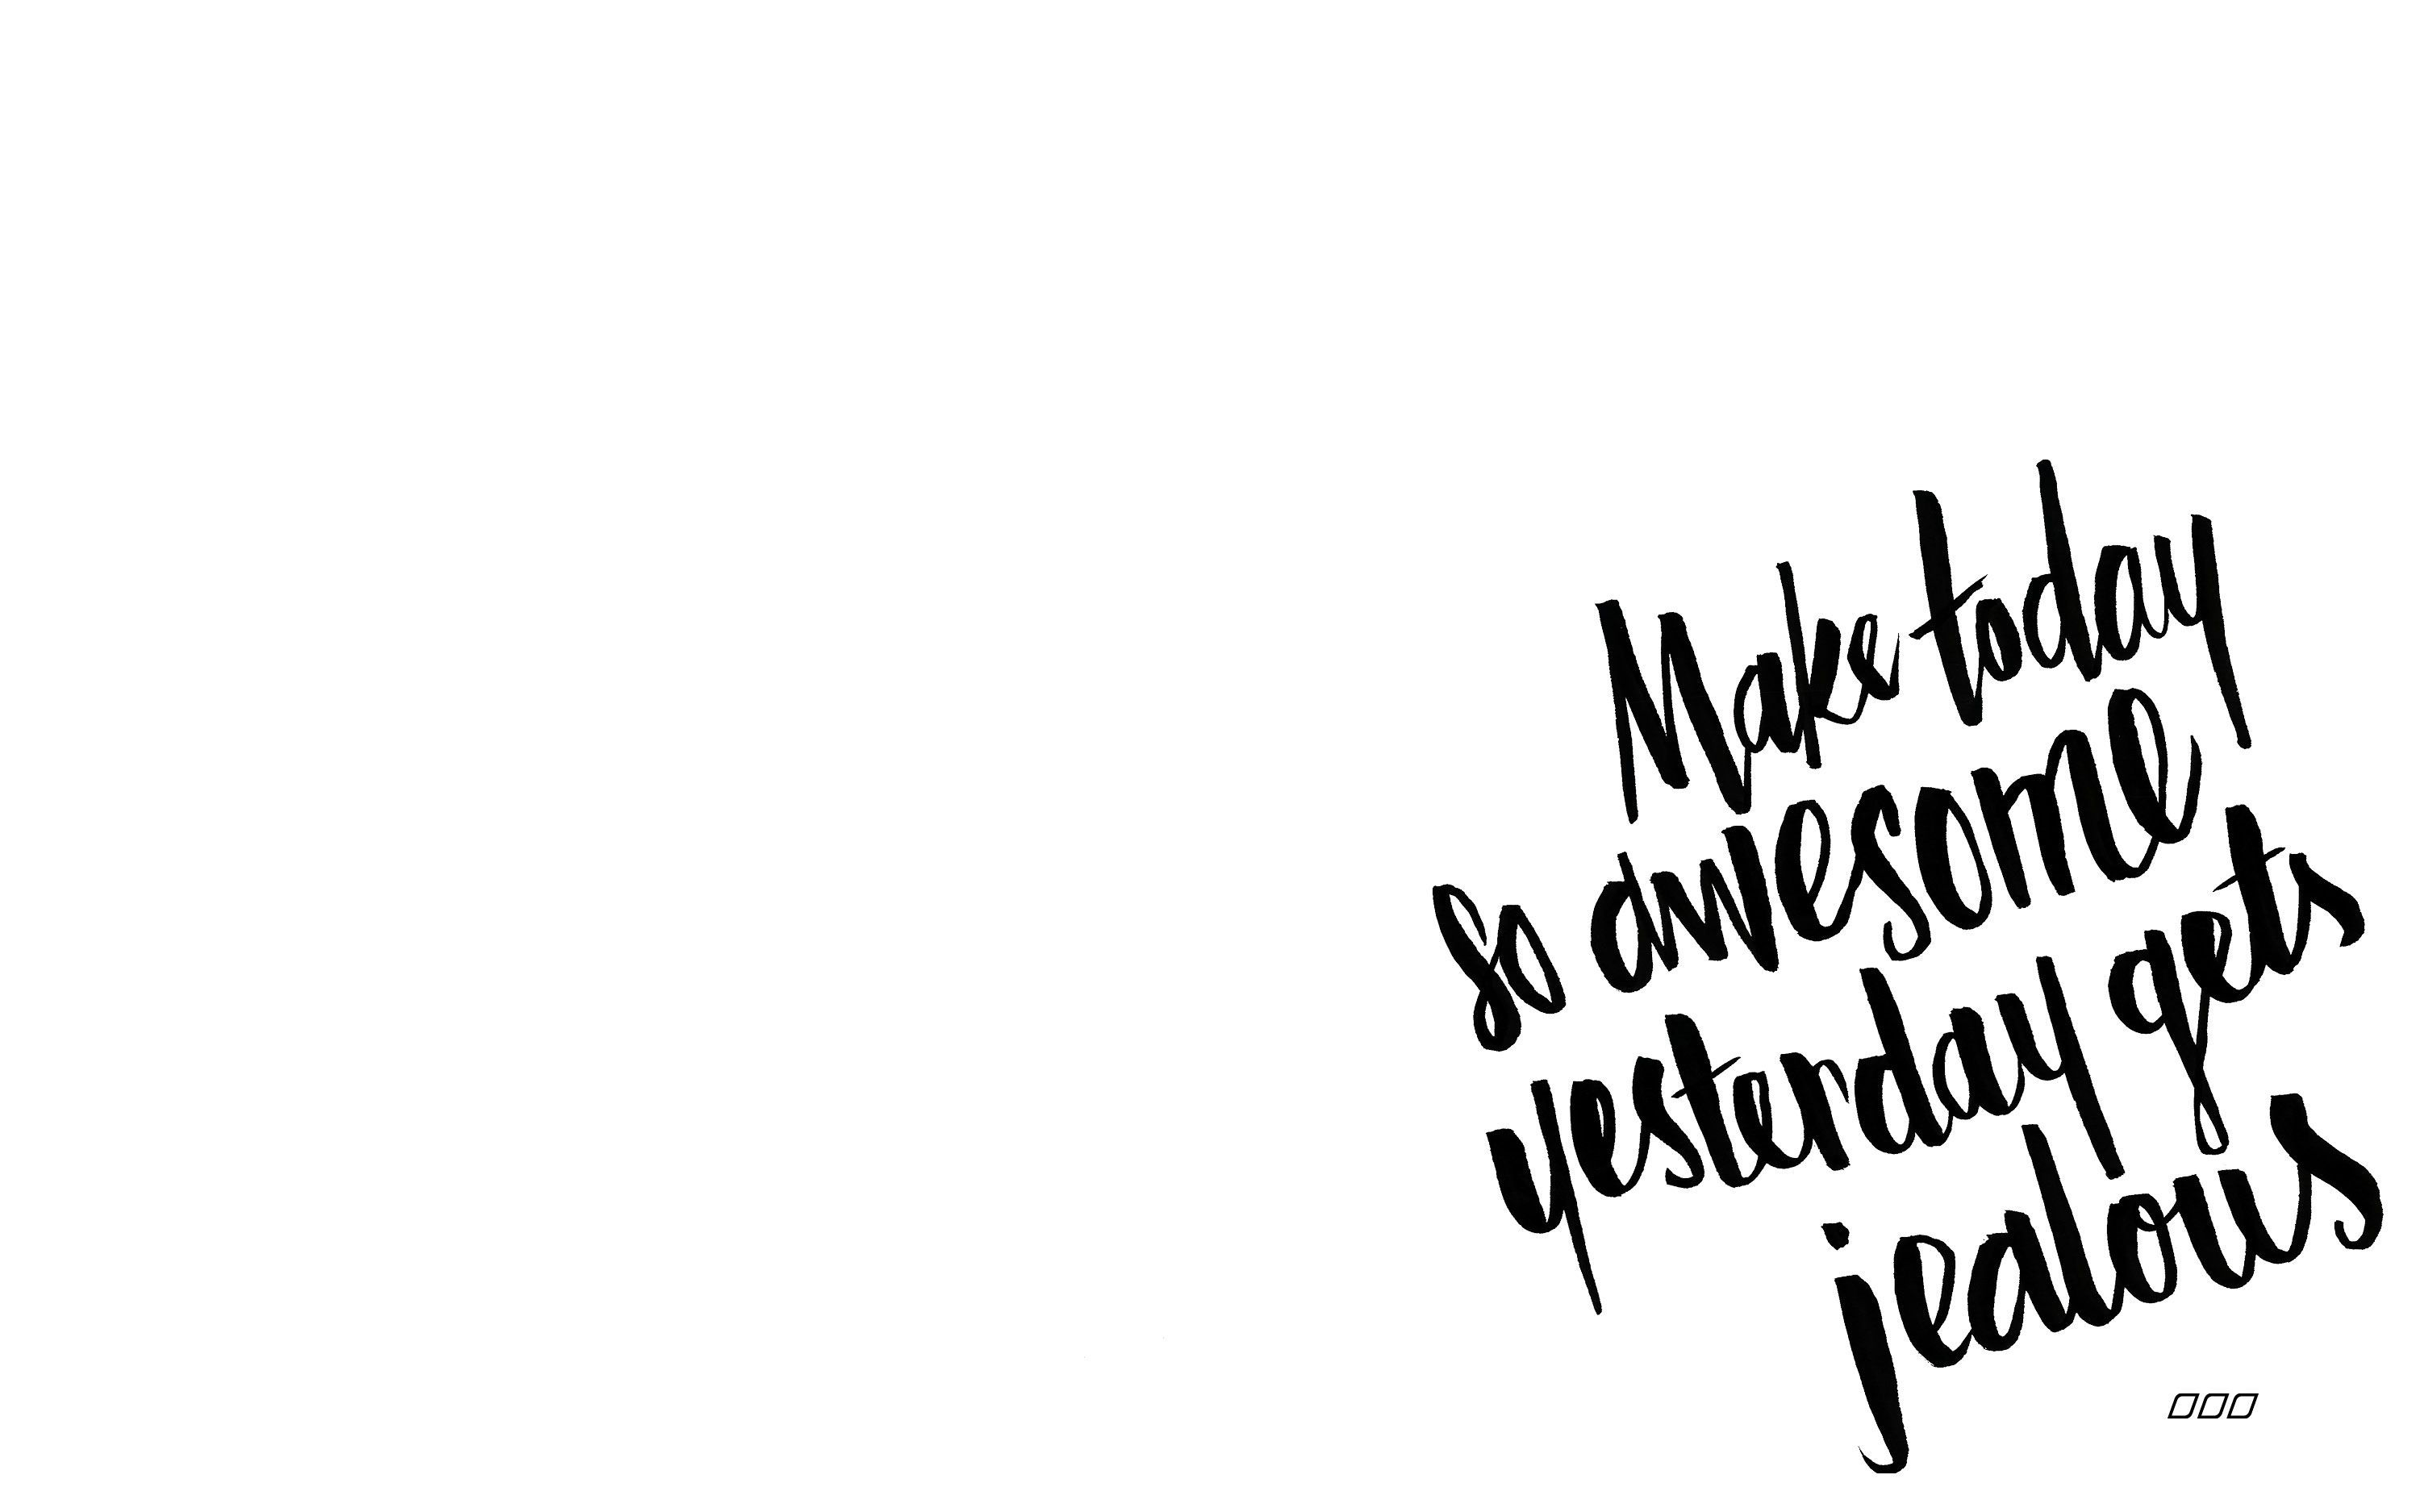 Motivational Quotes Desktop Wallpaper Hd Posted By Ryan Thompson